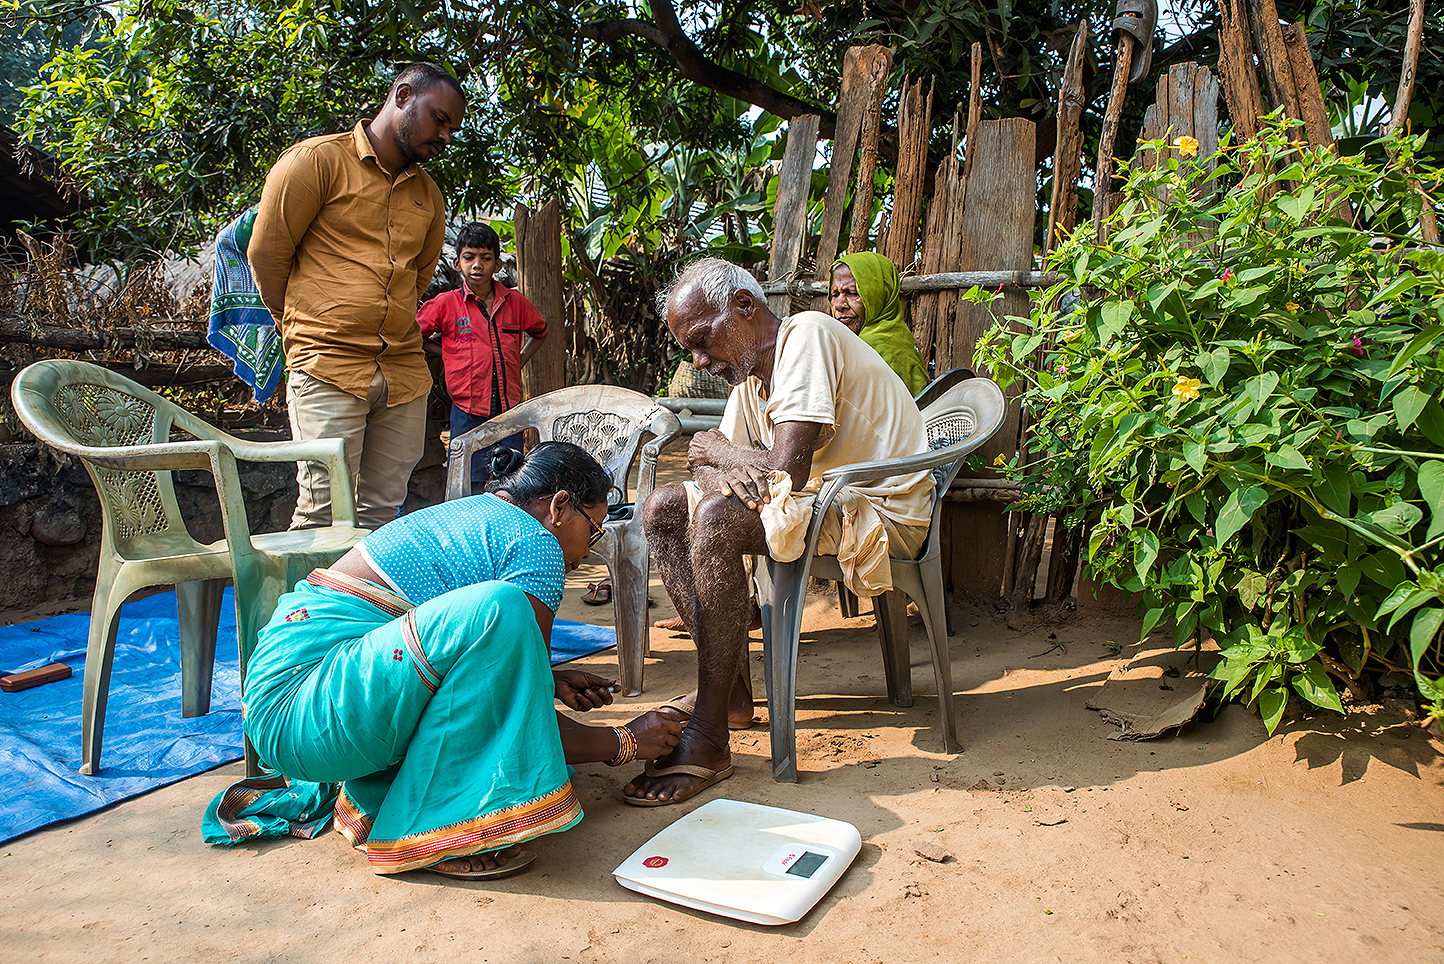 A community health worker trained by    Intelehealth    in rural Odisha evaluating a patient.